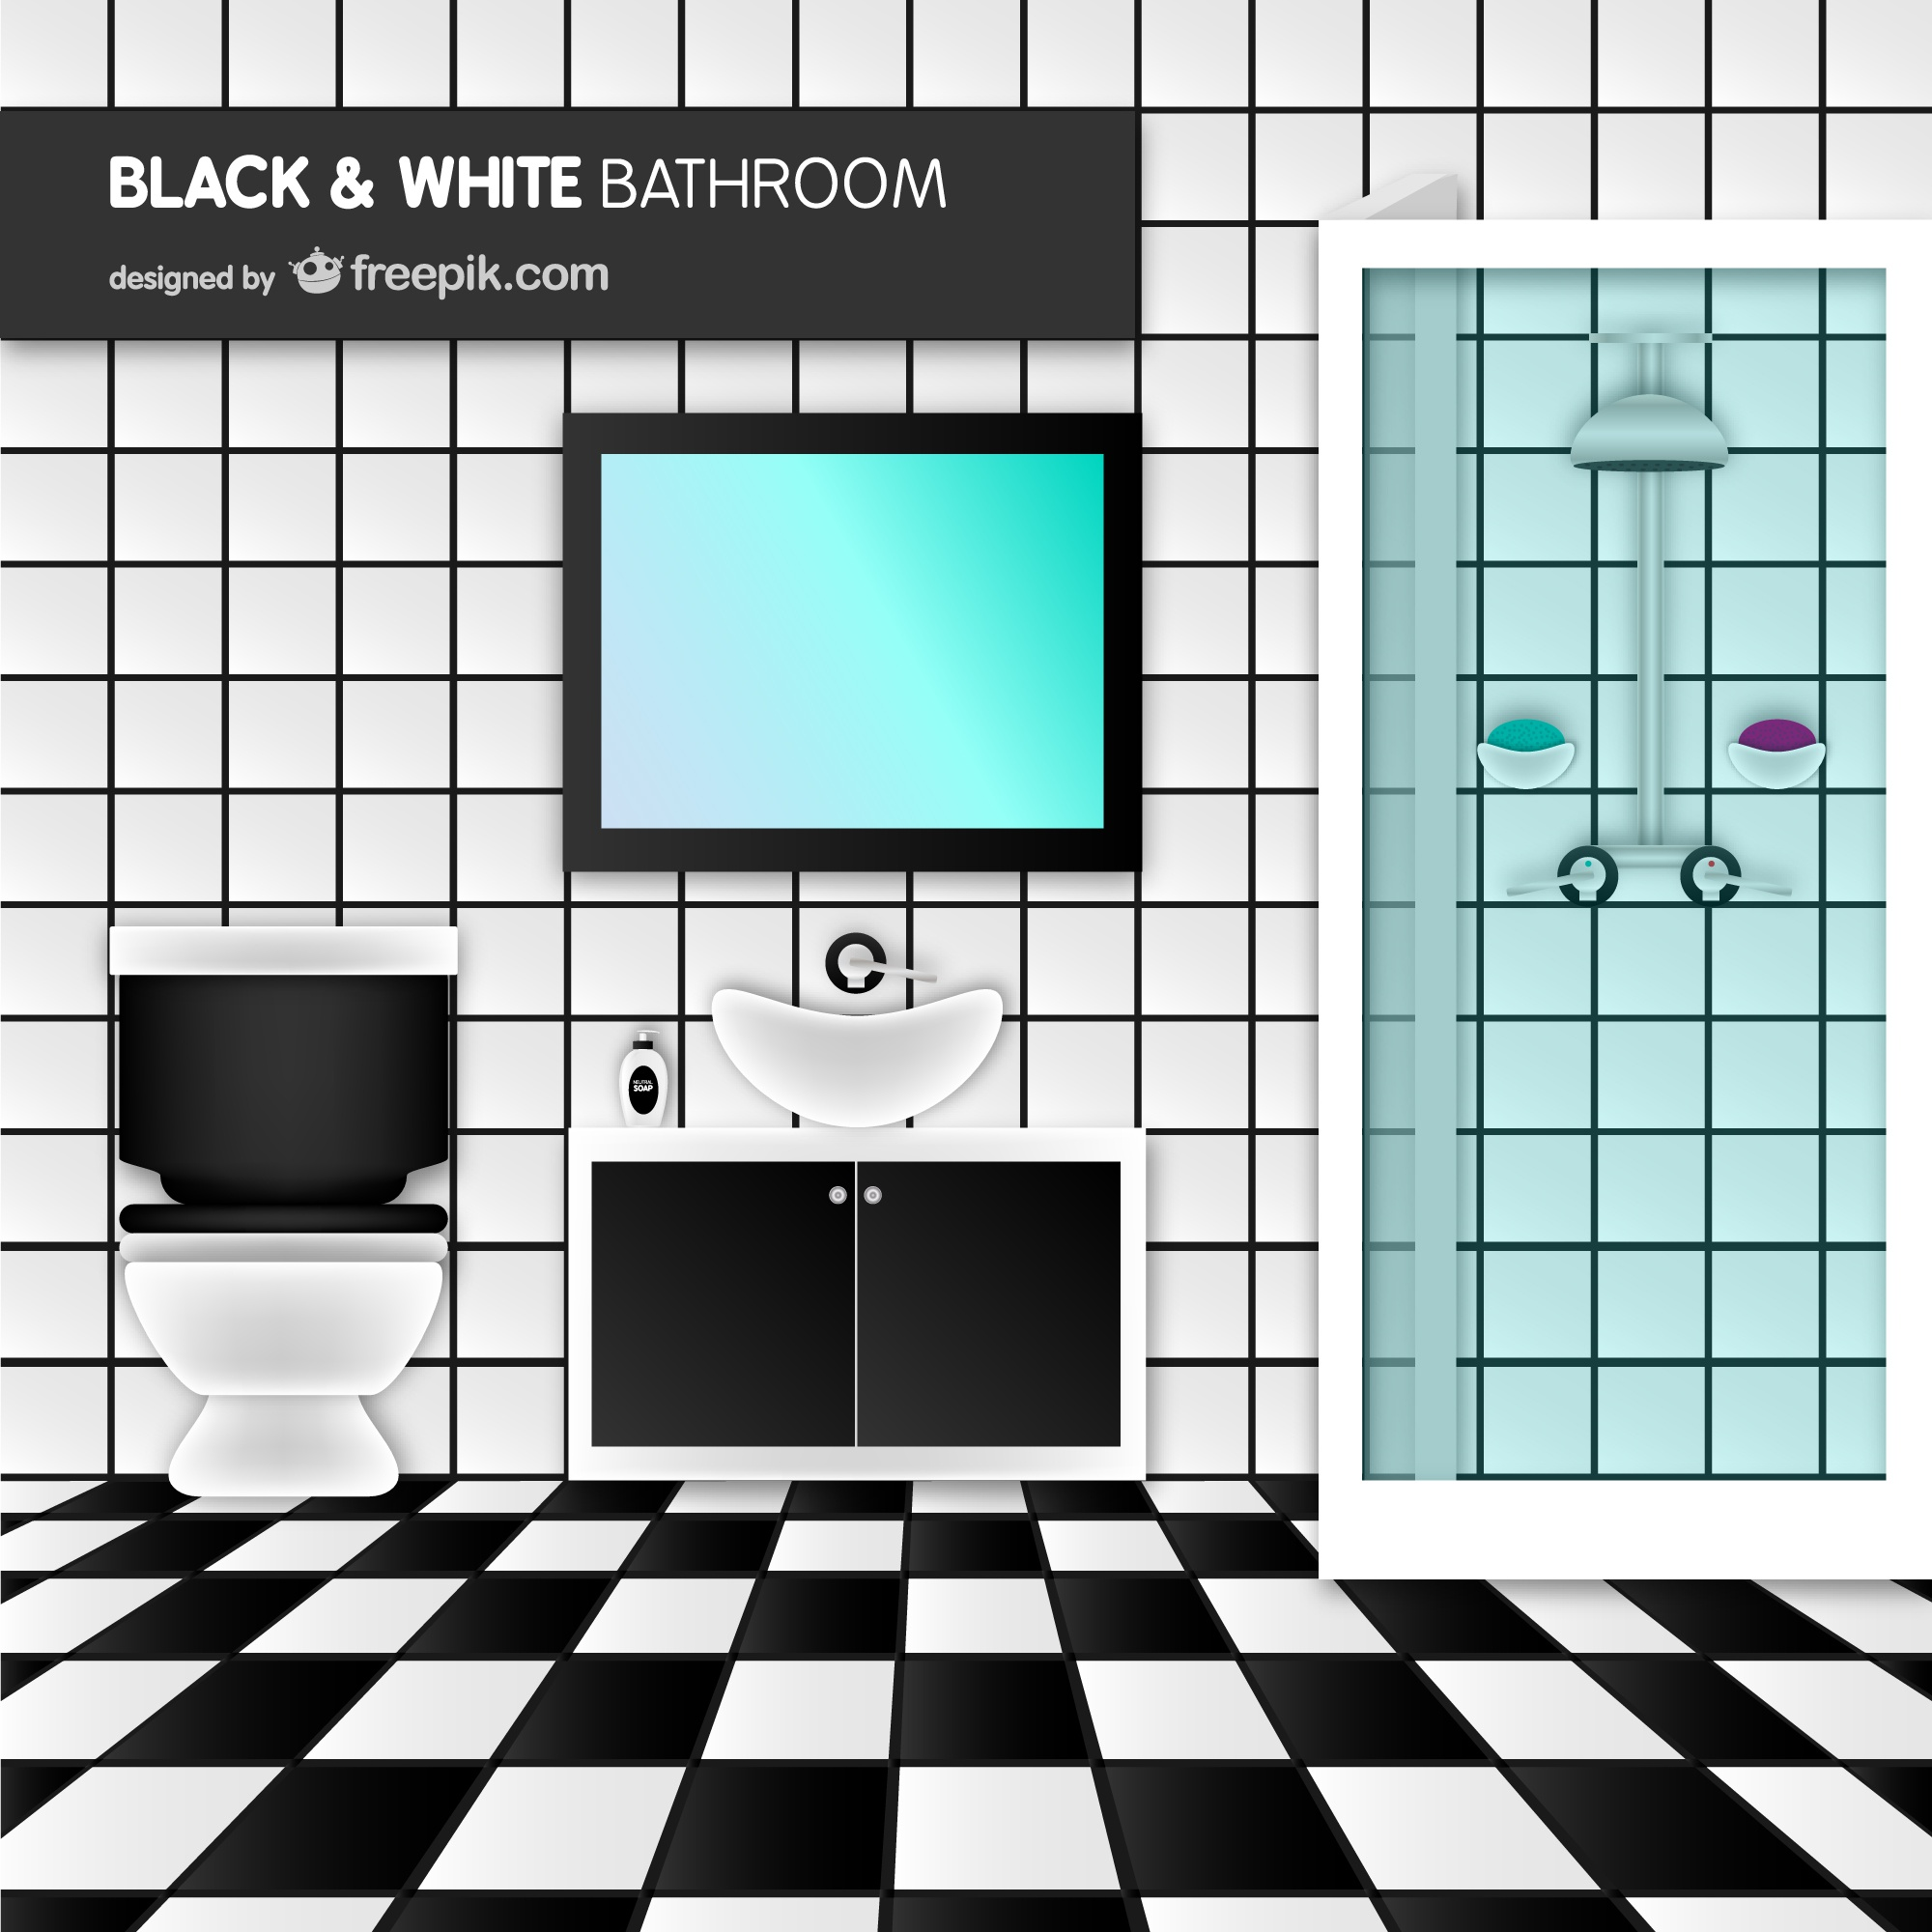 Black and white bathroom vector